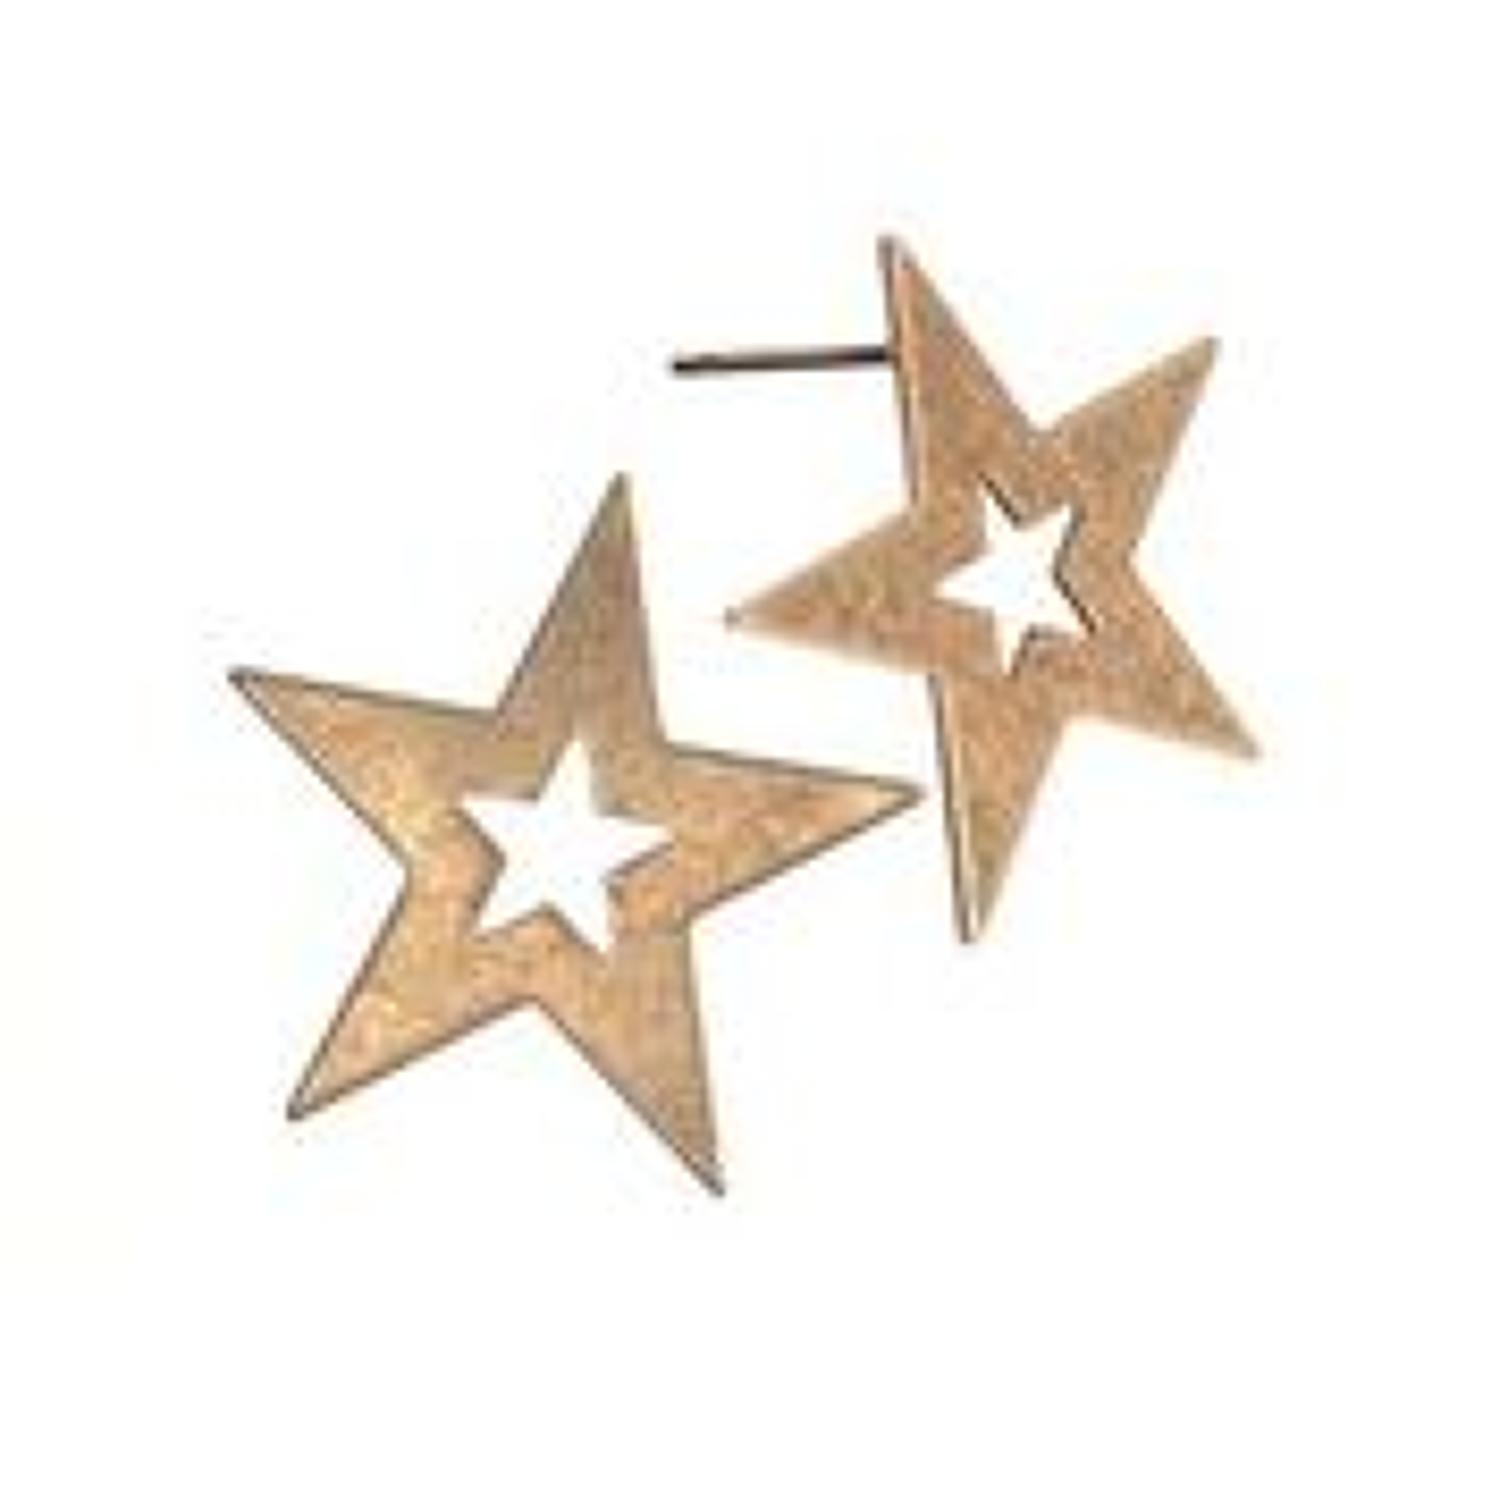 Hot tomato - Star struck earings- Worn gold